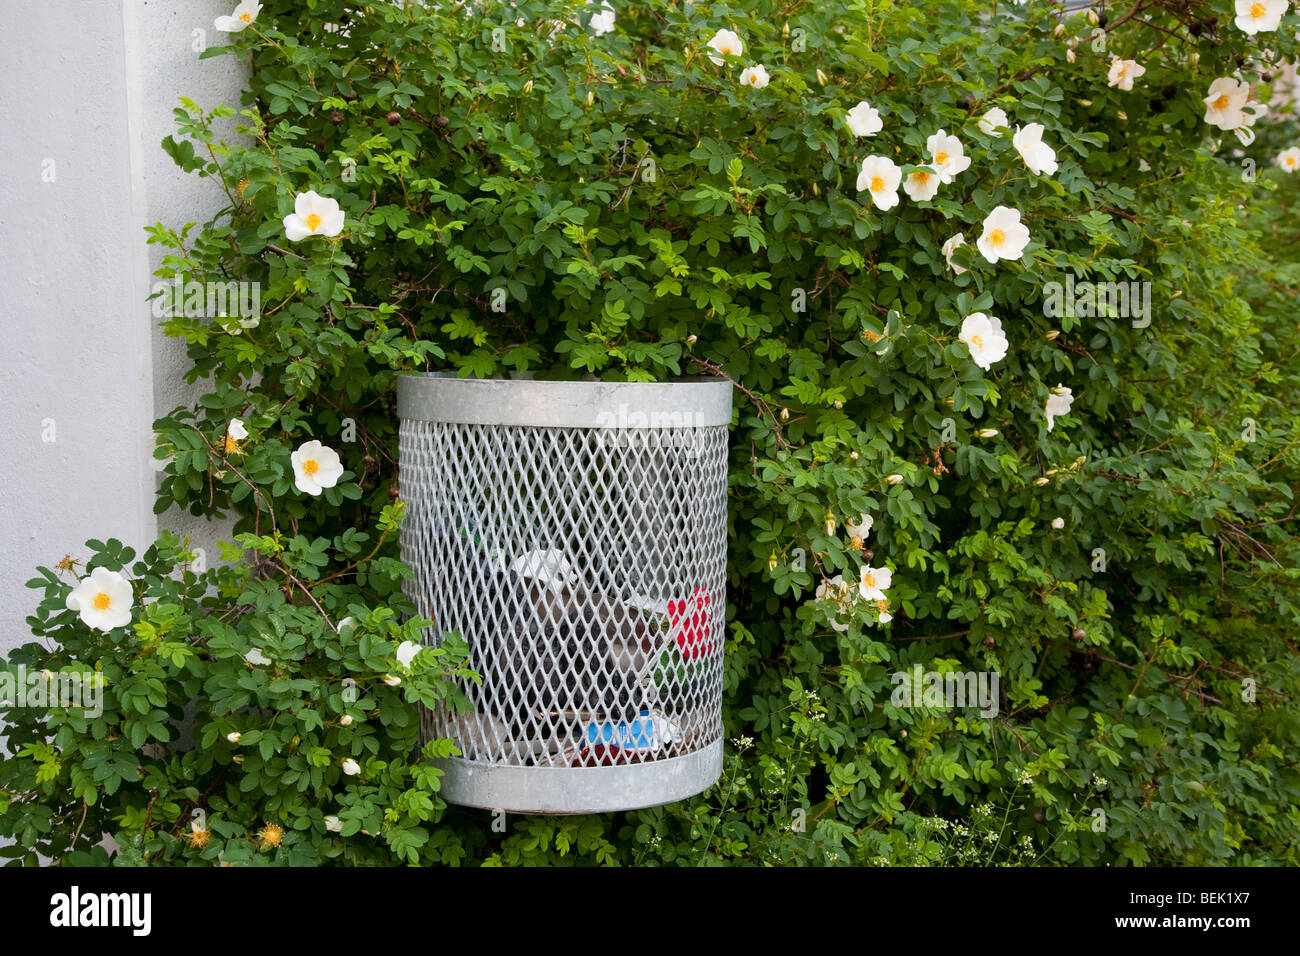 Trash can in a rose bush Stock Photo